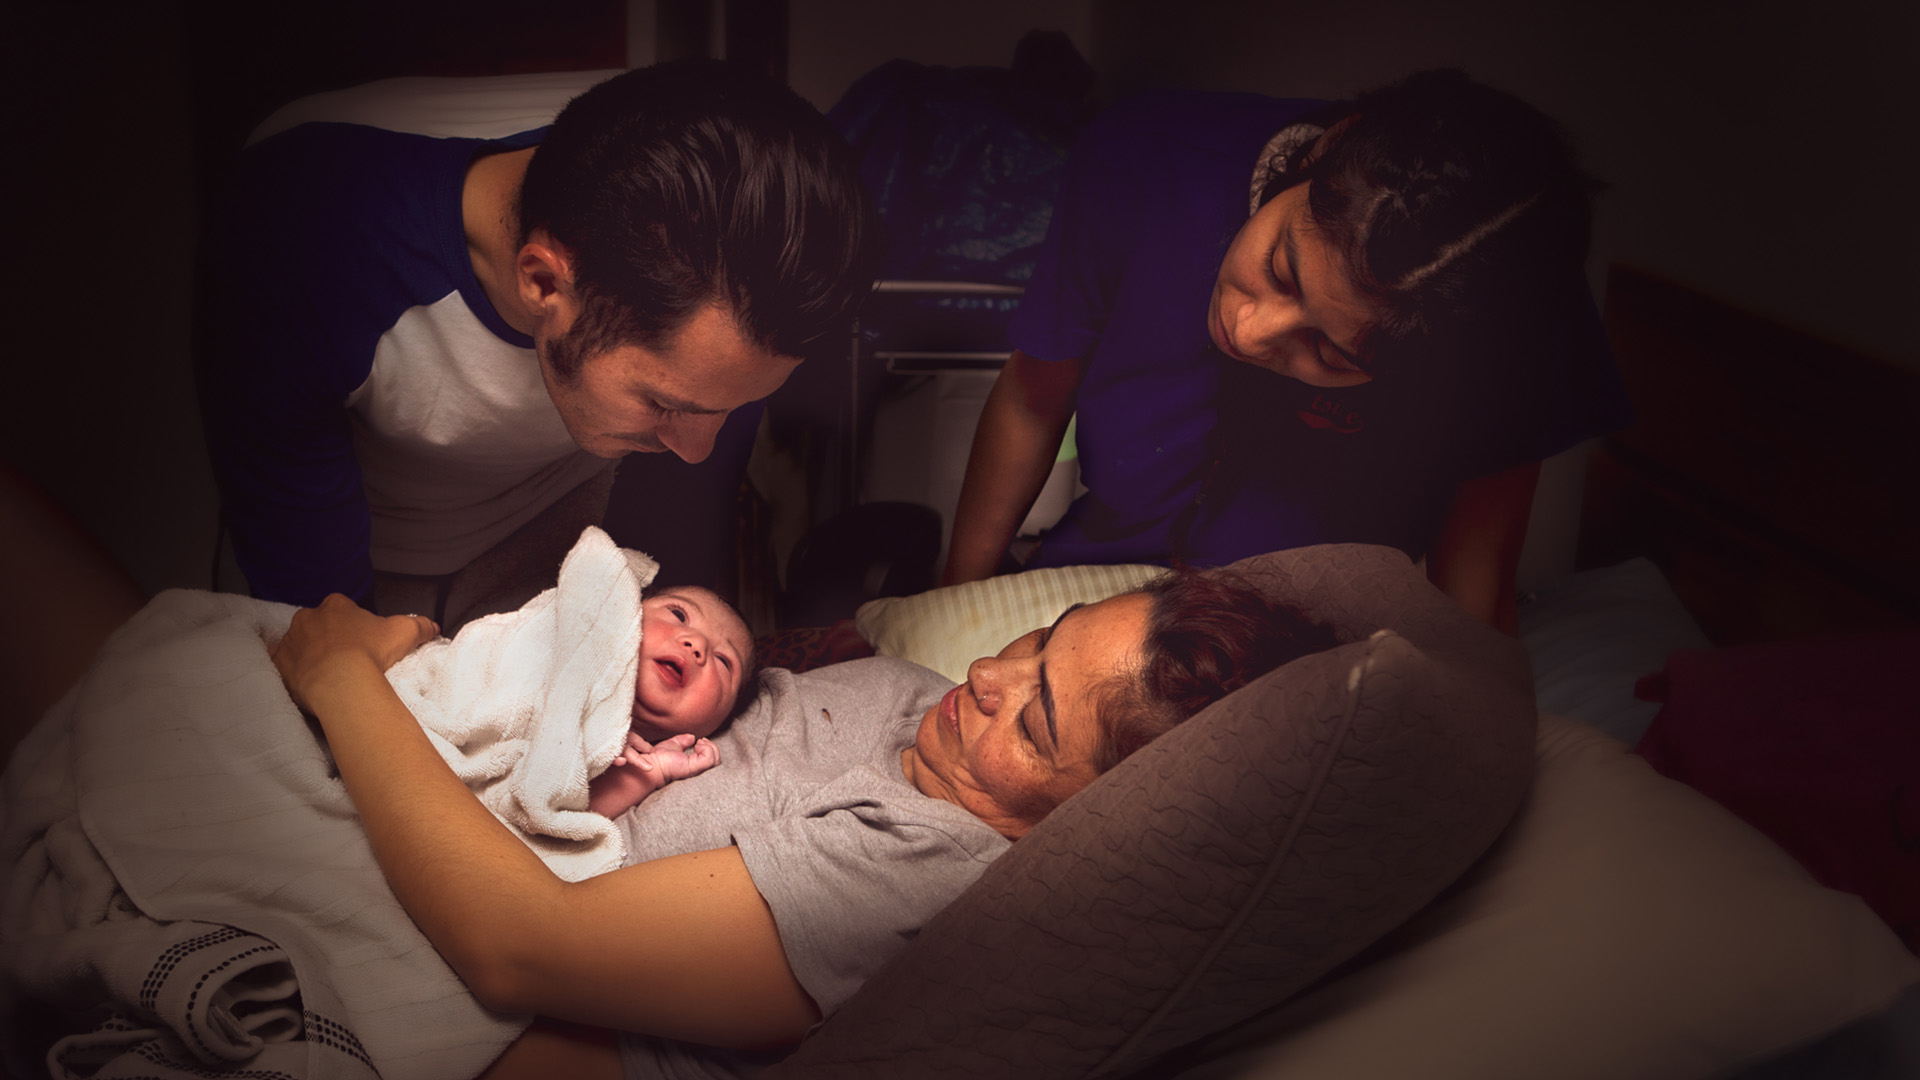 Los Angeles home birth photo by Leona Darnell showing a family looking at a newborn